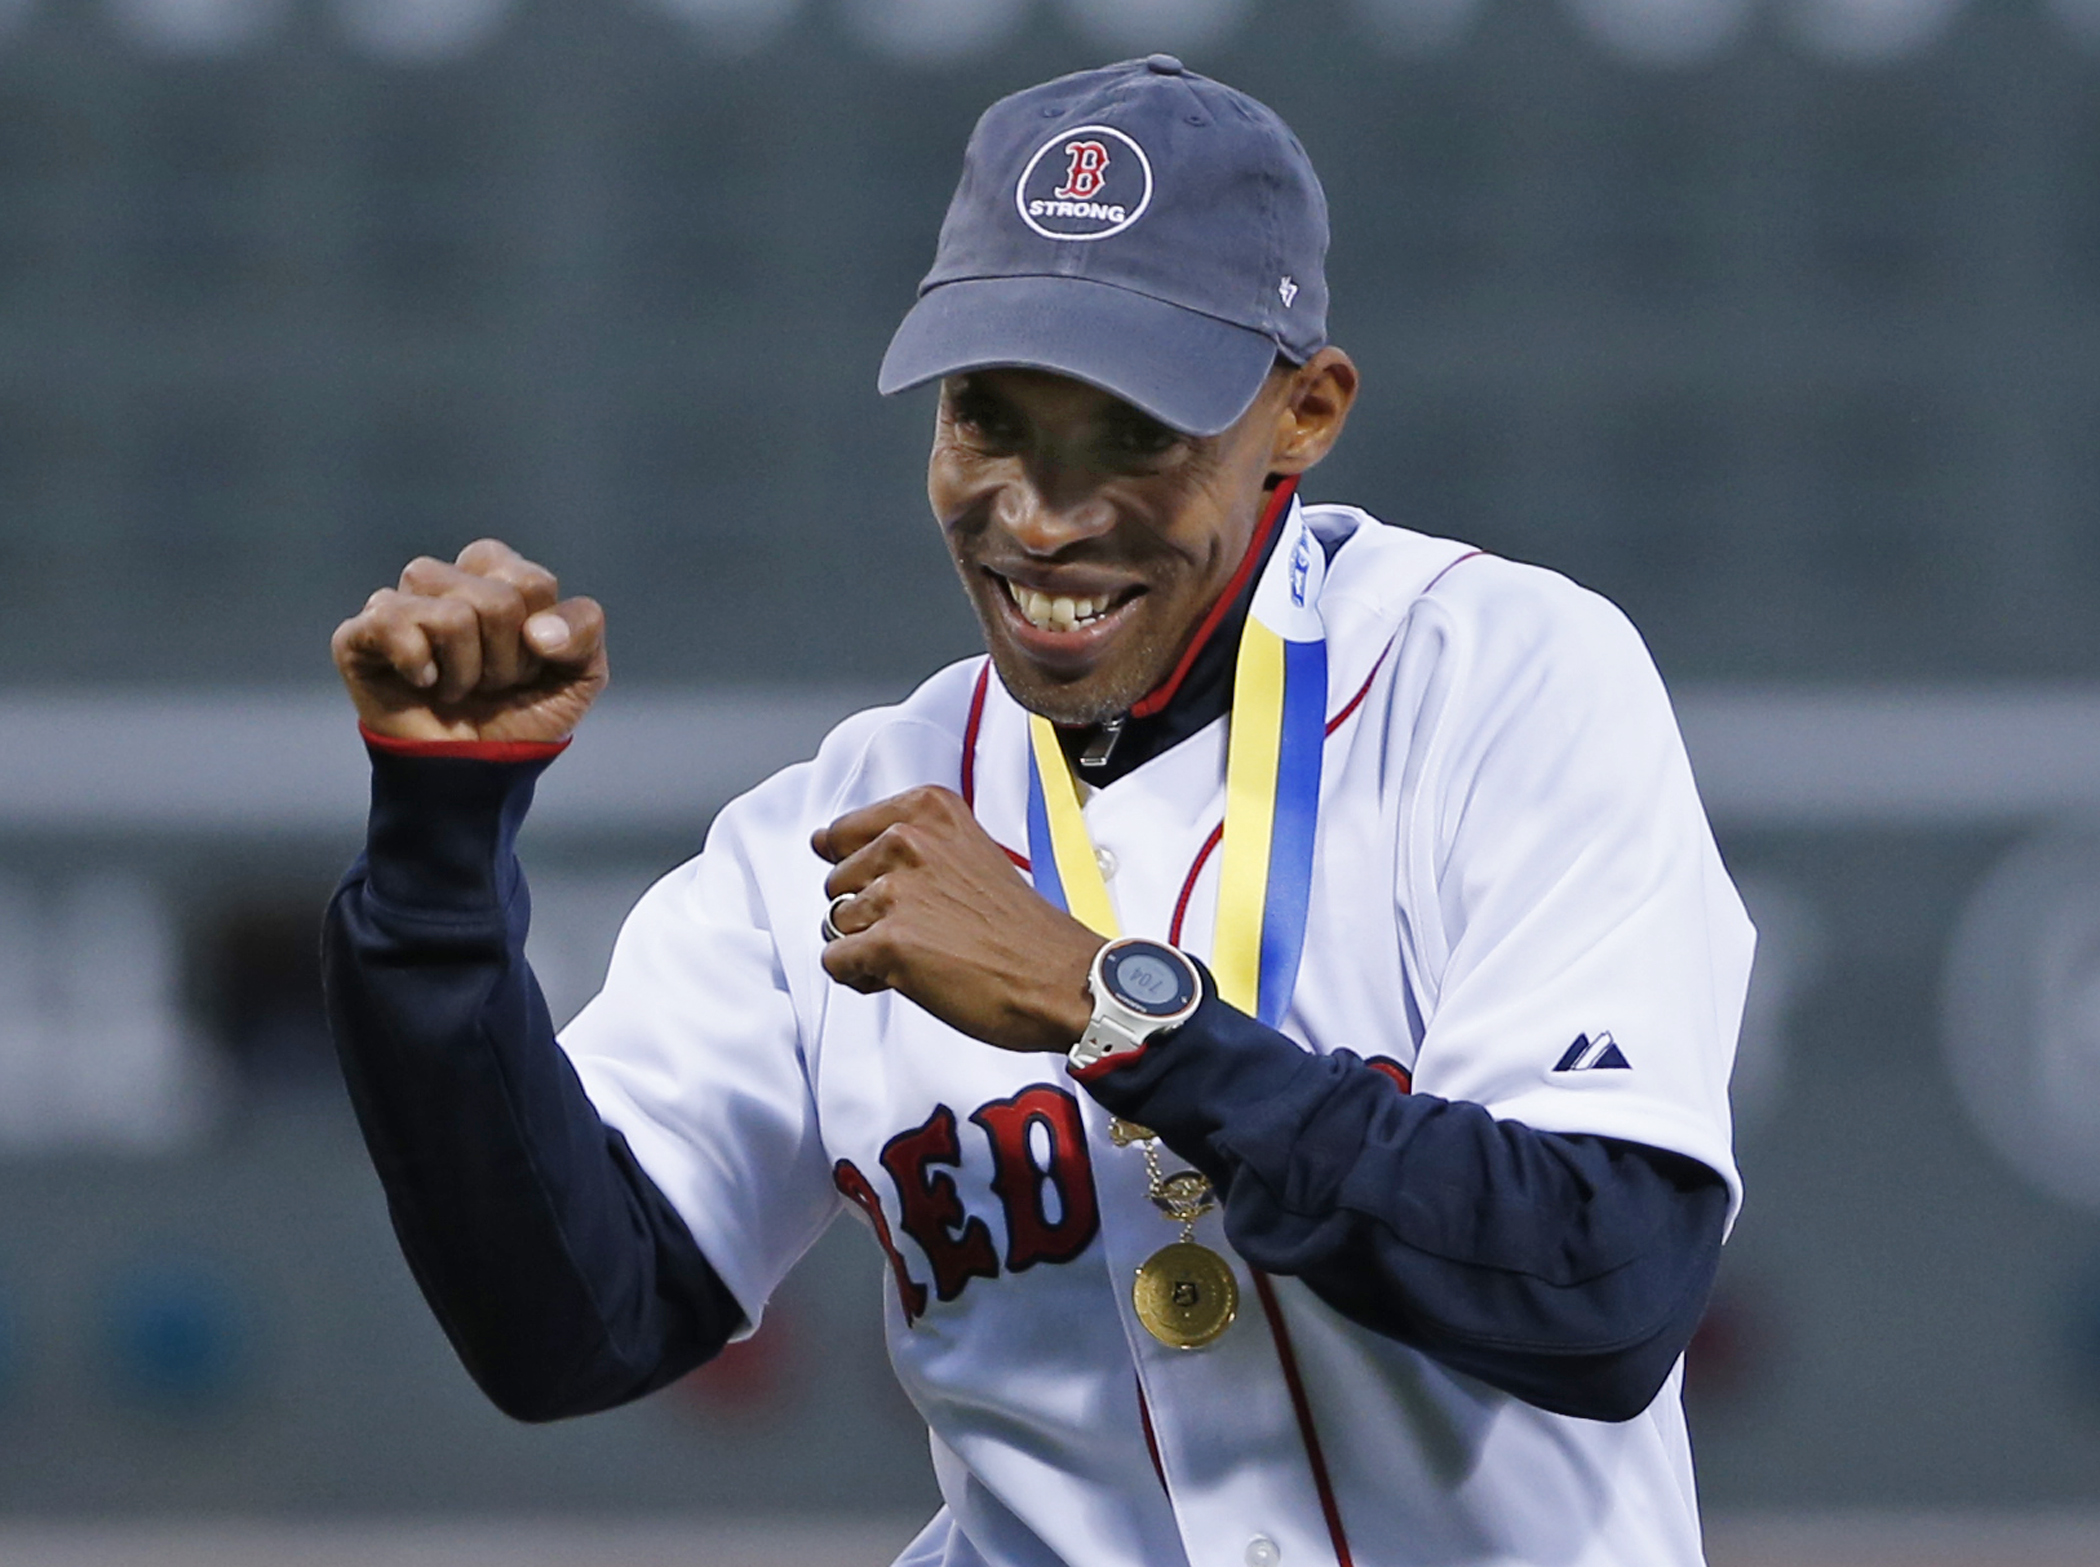 ADVANCE FOR WEEKEND EDITIONS, APRIL  18-19- FILE - In this April 23, 2014, file photo,2014 Boston Marathon winner Meb Keflezighi reacts after throwing a ceremonial first pitch prior to a baseball game between the Boston Red Sox and New York Yankees at Fen